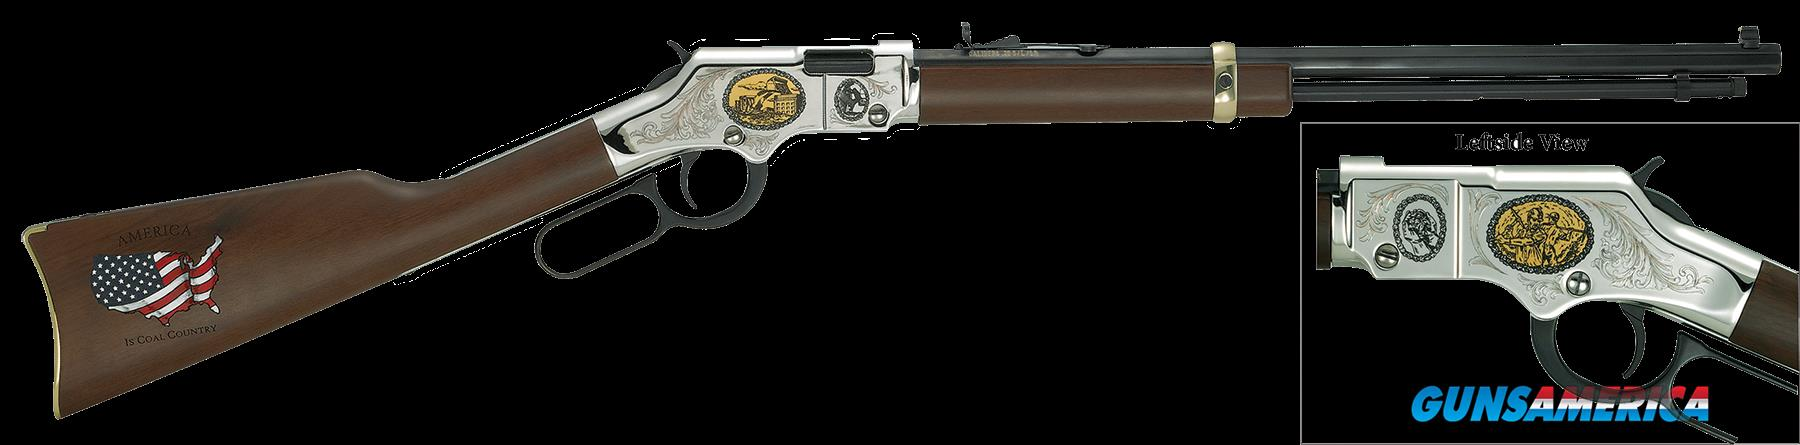 "Henry H004CM2 Golden Boy Coal Miner Tribute II Lever 22 Short/Long/Long Rifle 20"" 16 LR/21 Short  Guns > Rifles > H Misc Rifles"